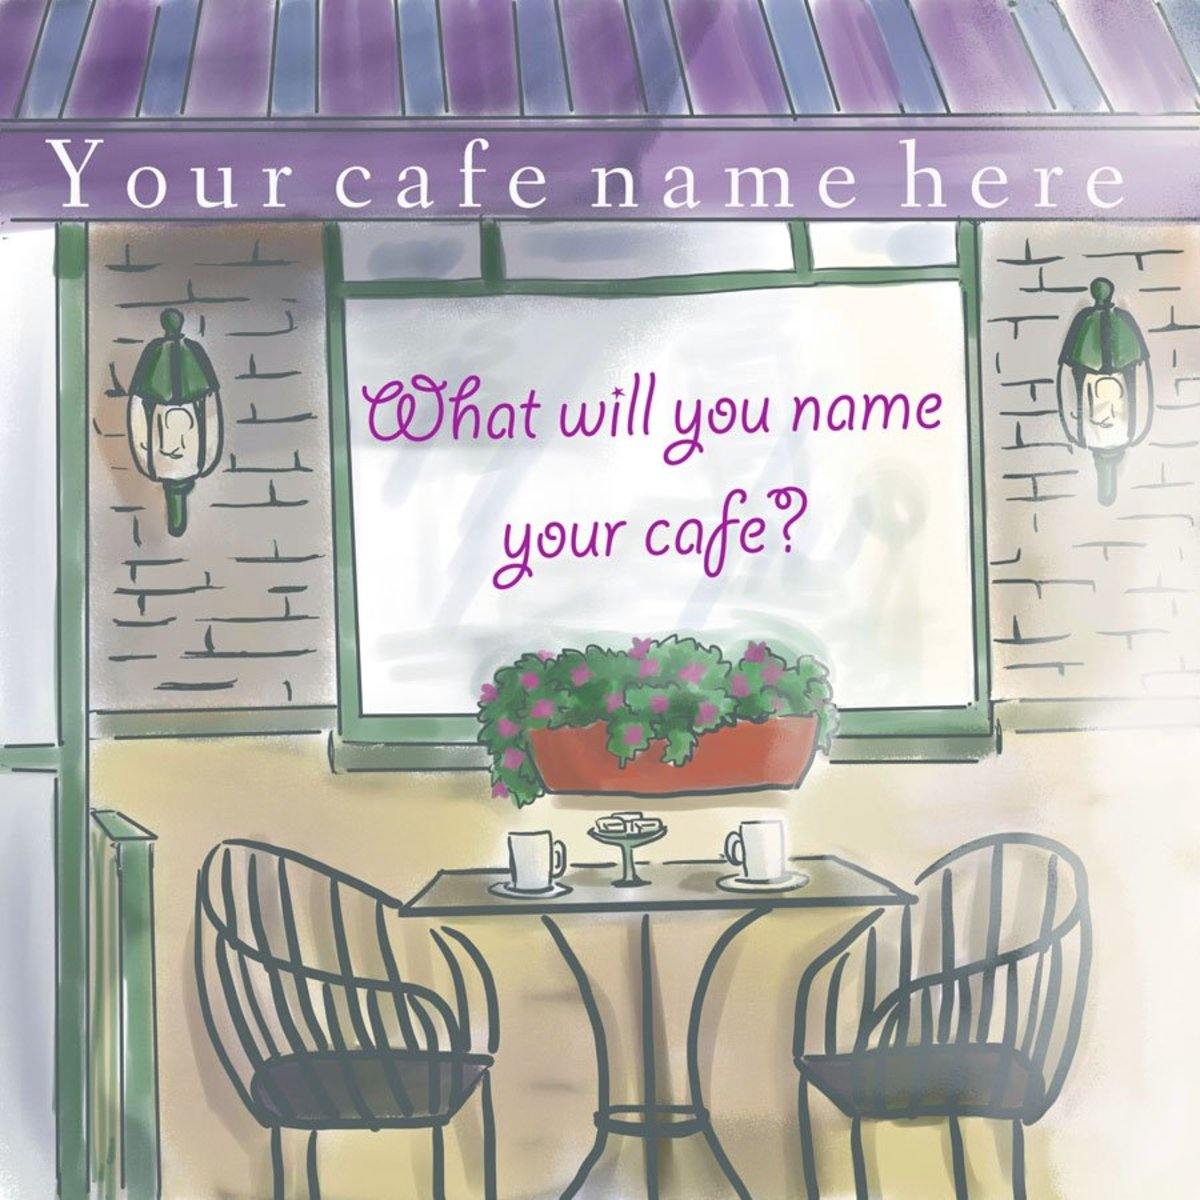 What can i call a coffee shop?